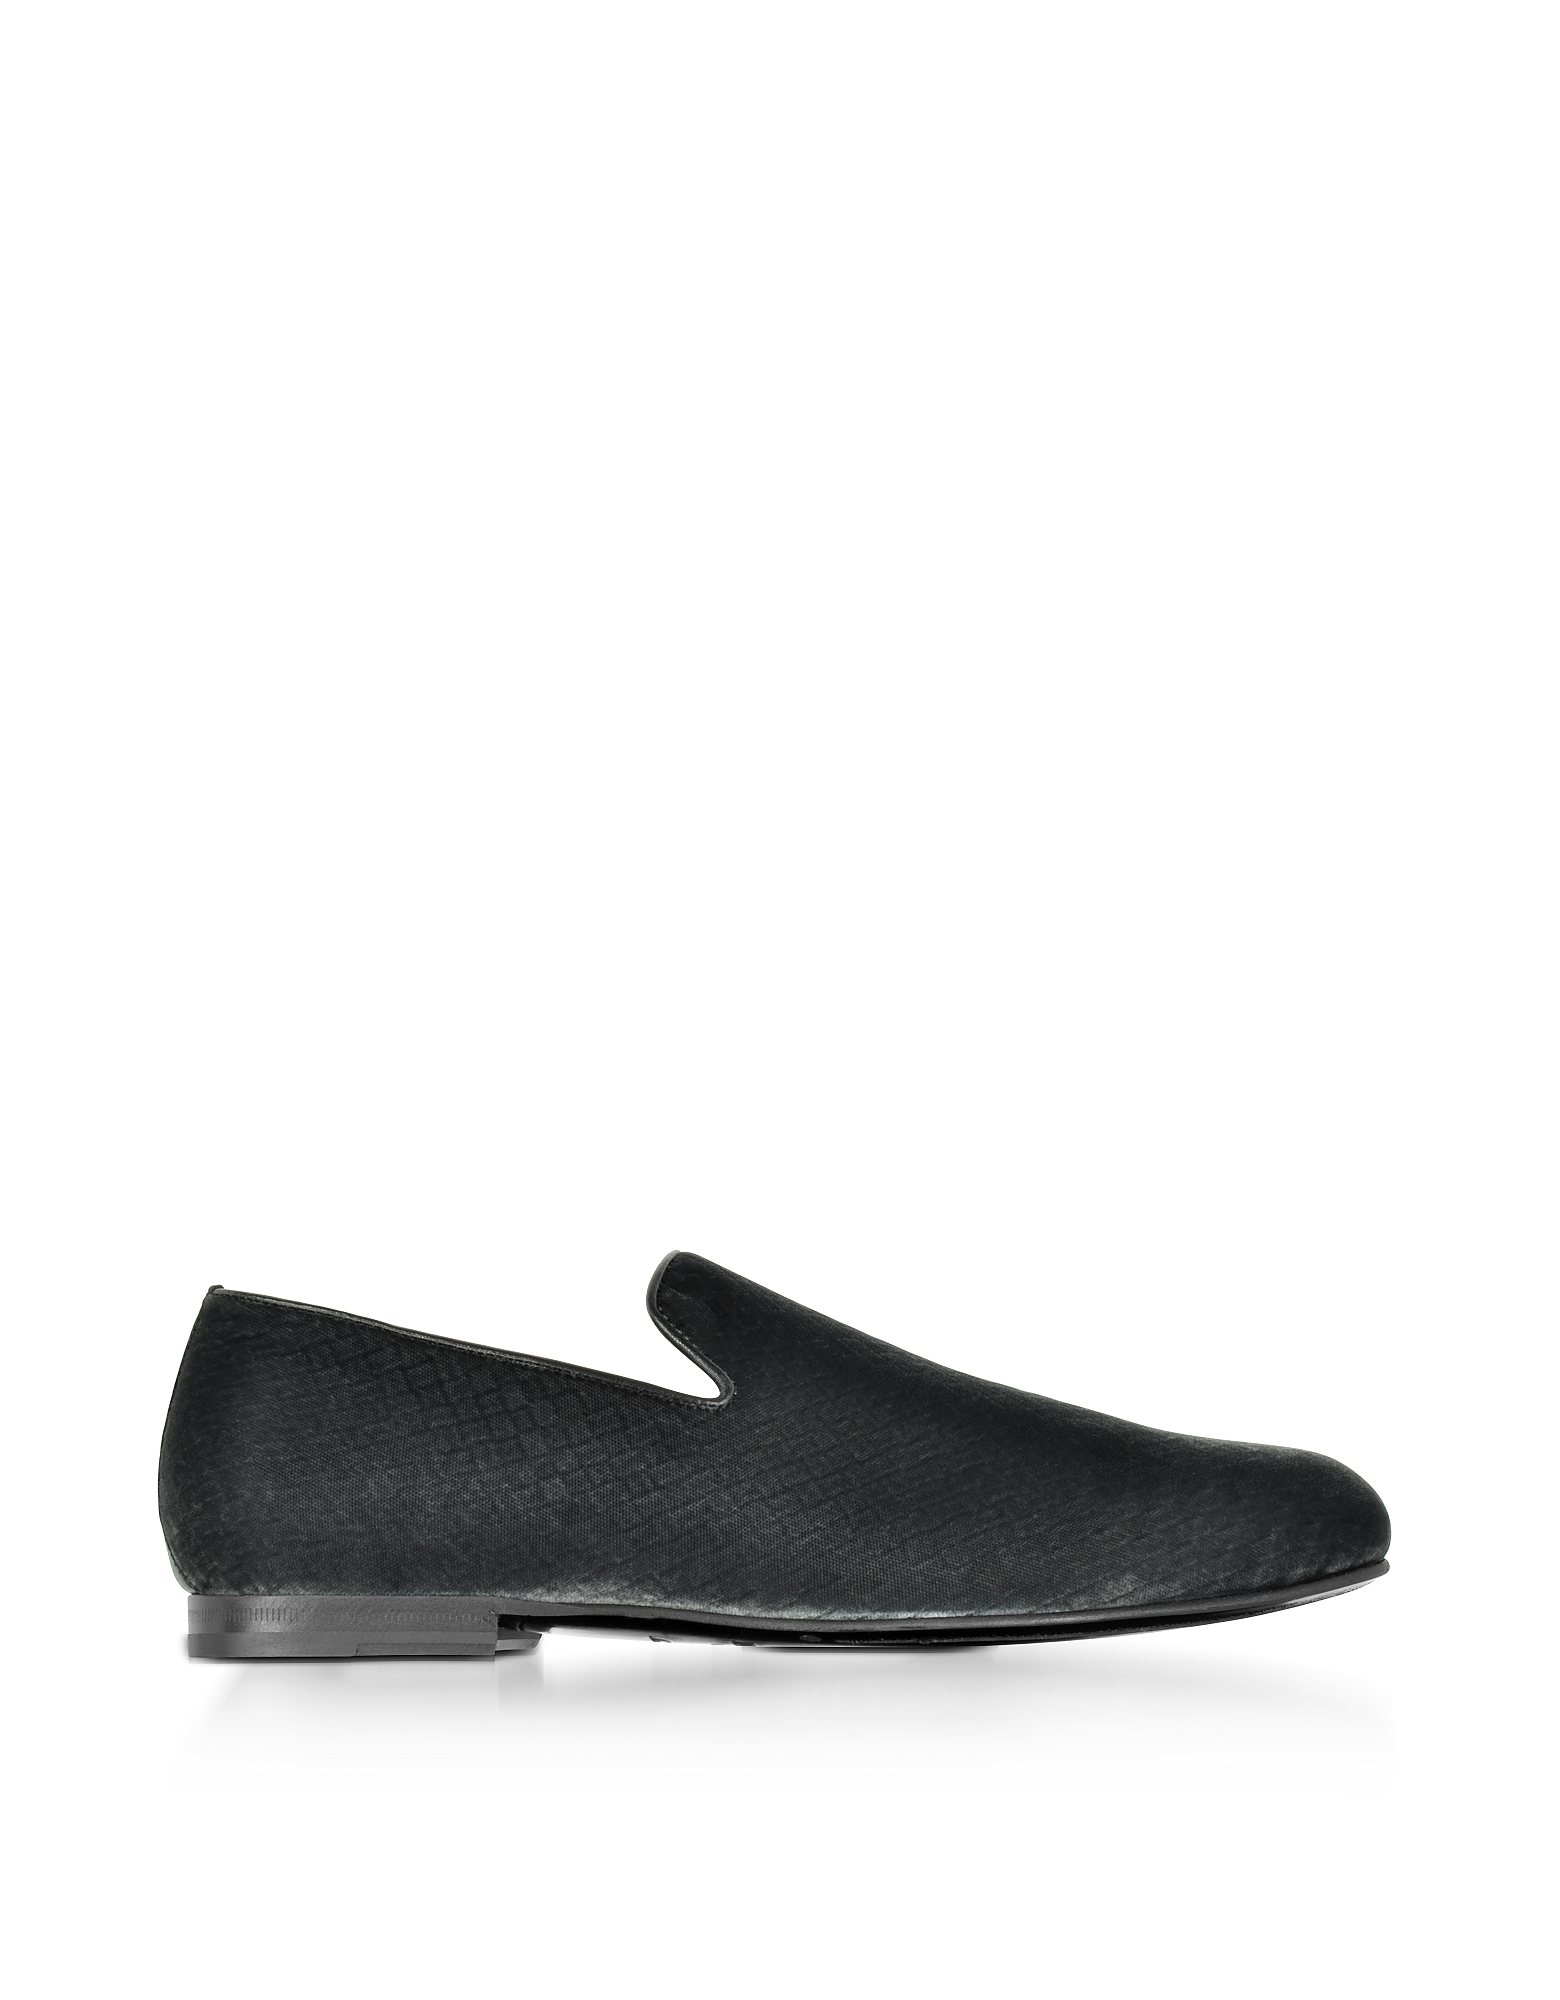 Jimmy Choo Shoes, Sloane Dust Gray Embossed Velvet Loafer